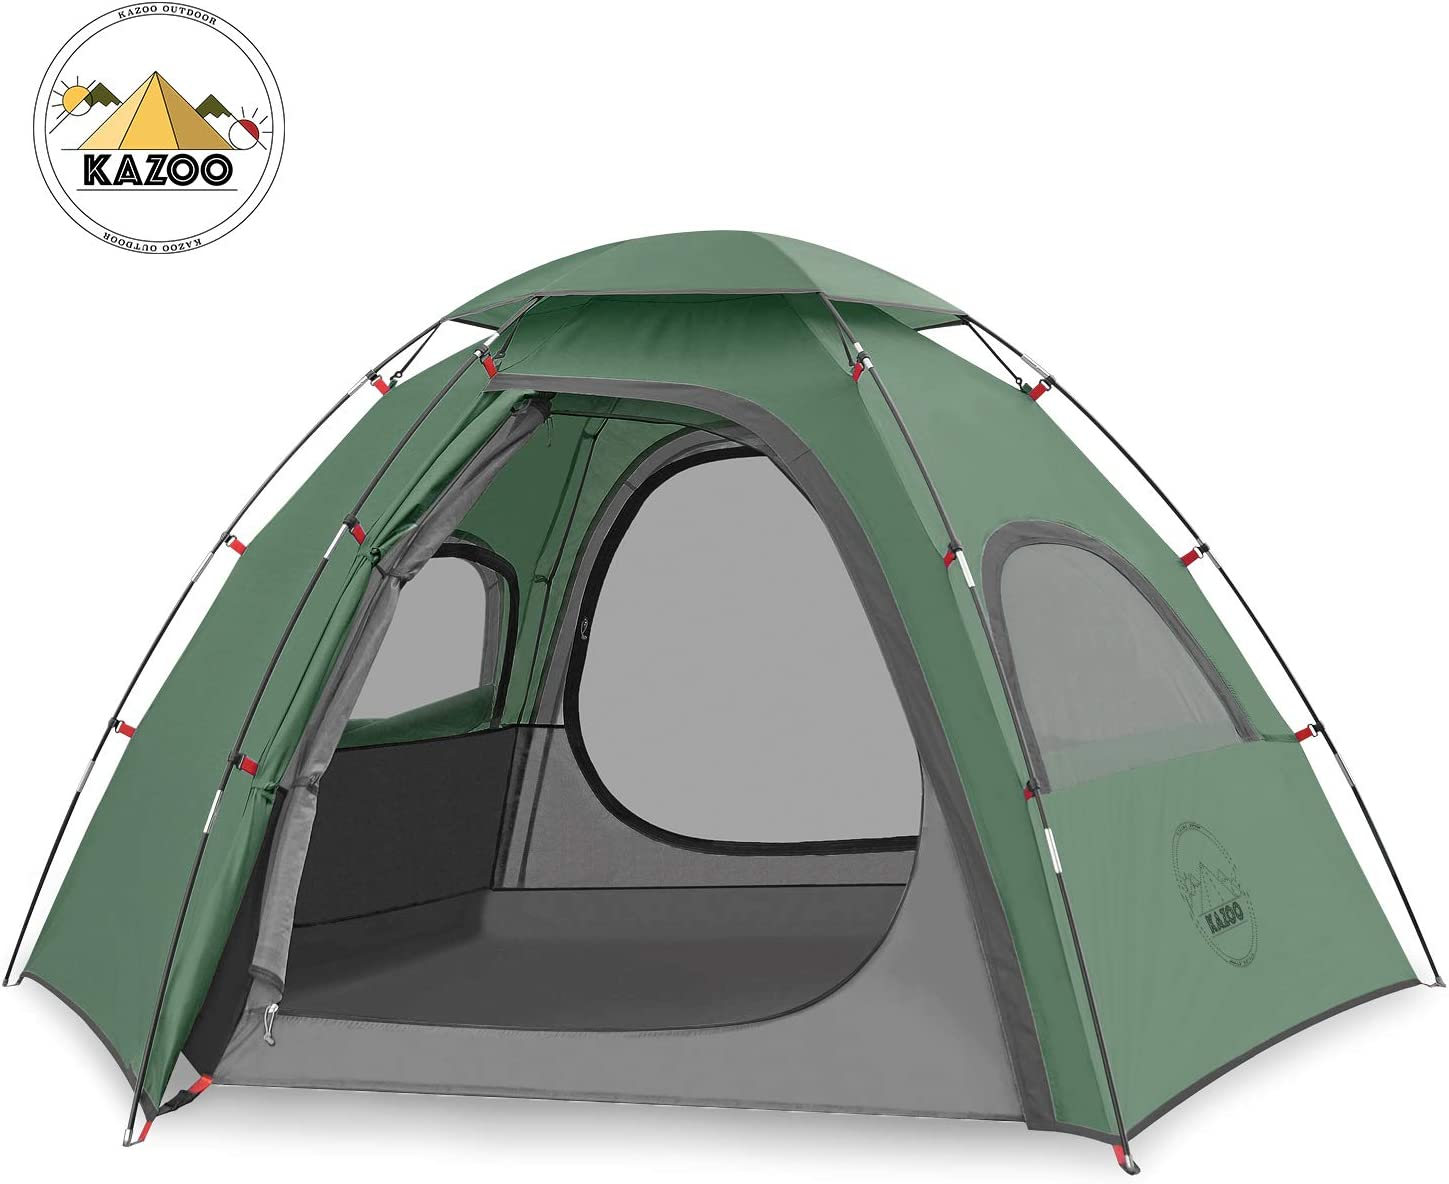 KAZOO Outdoor Family Tent Durable Lightweight Waterproof Camping Tents Easy Setup festival dome Tent Sun Shade 2//3 Person